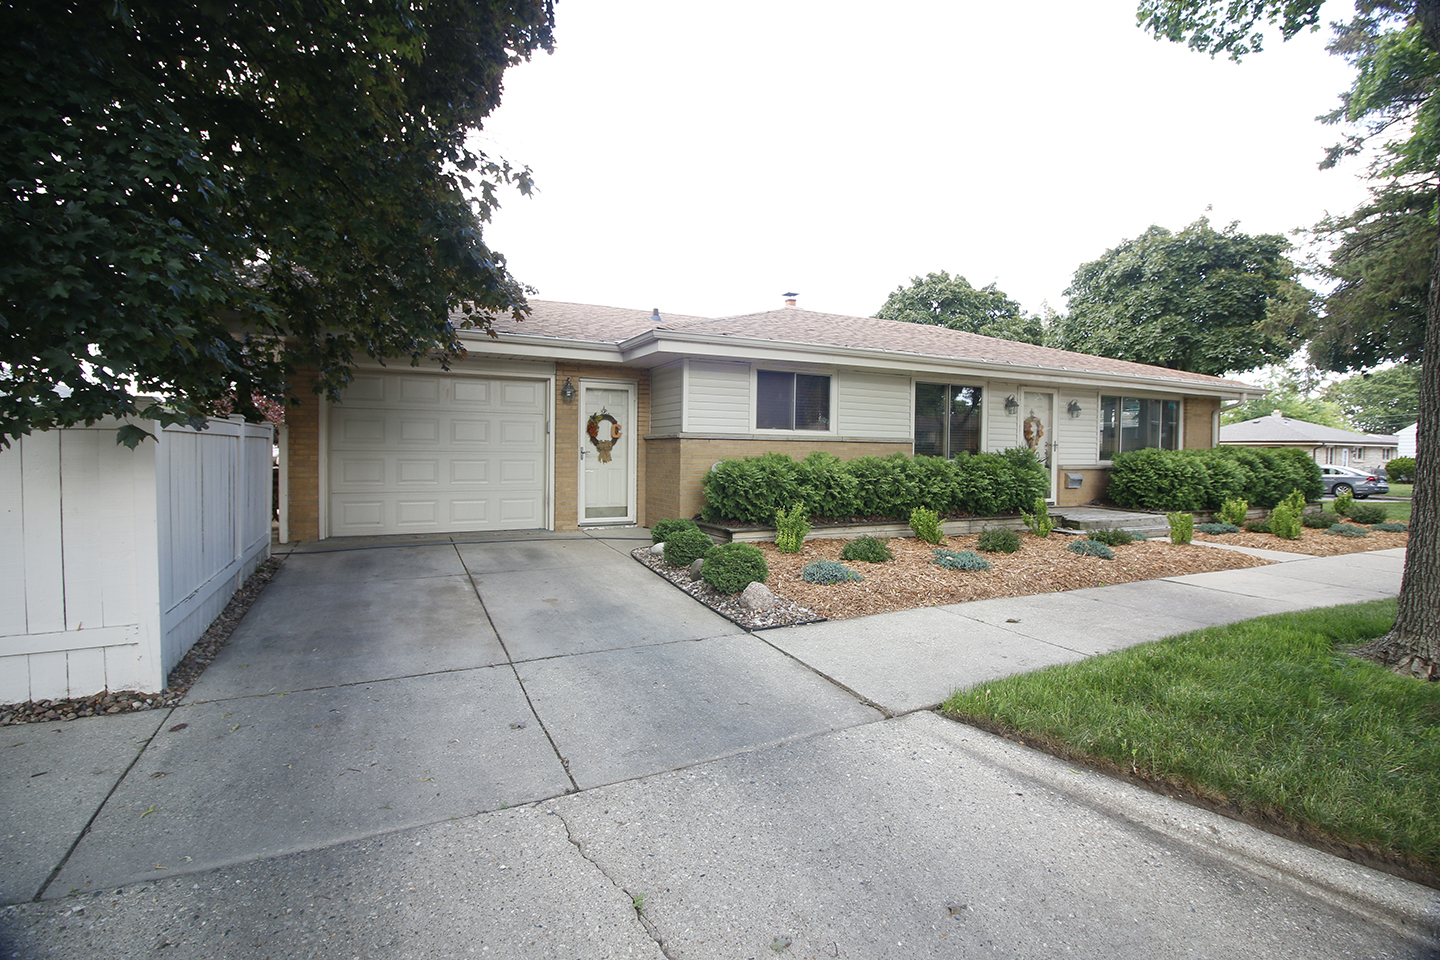 7300 W. Ruby Ave. Photo courtesy of Riverwest Realty.